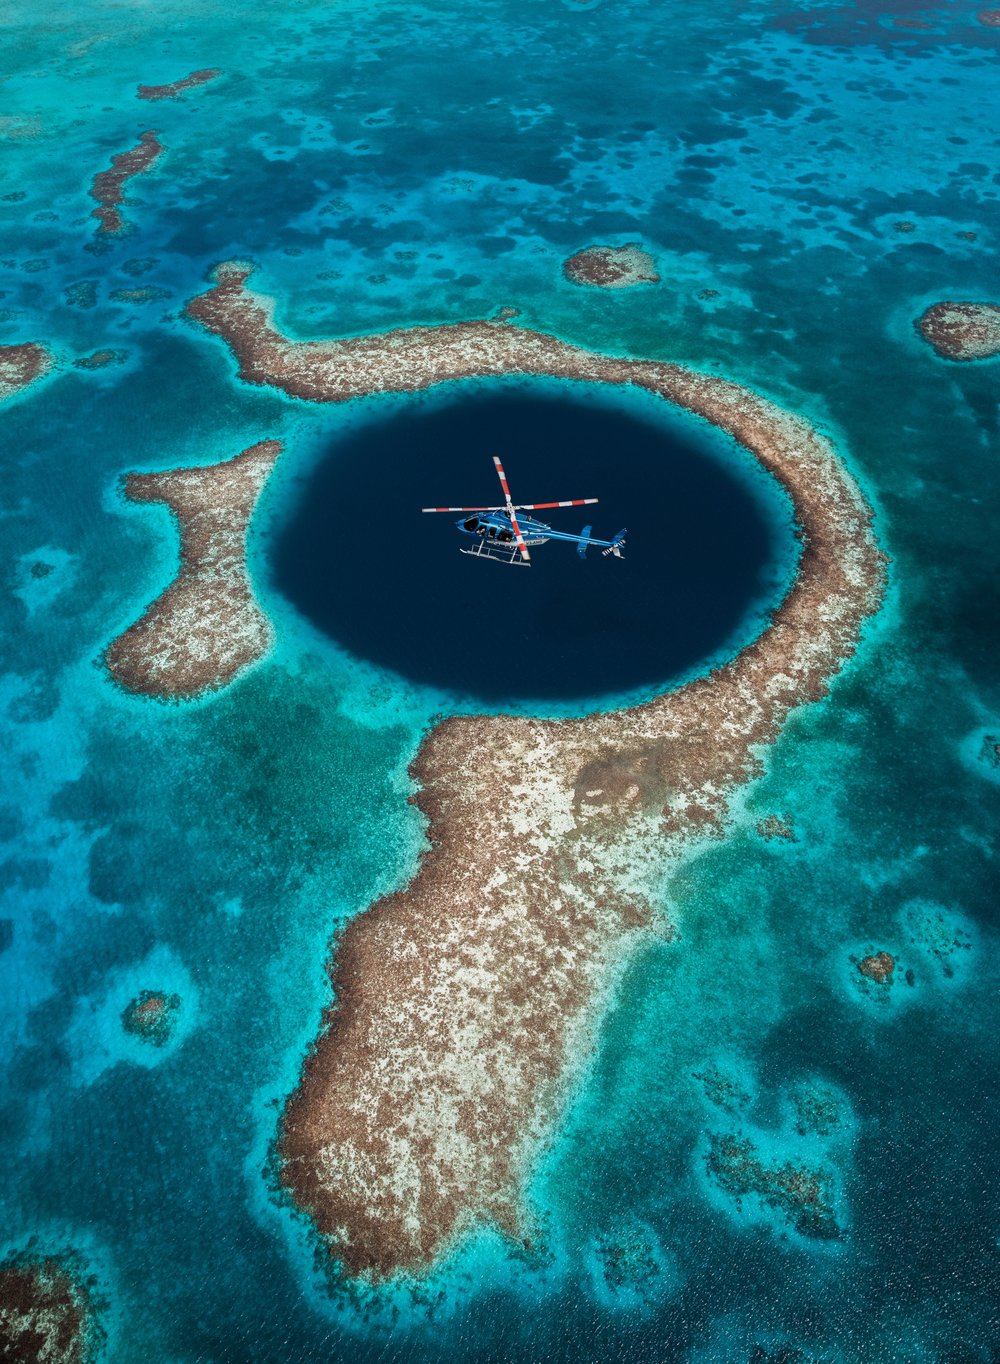 The Great Blue Hole Bell 407